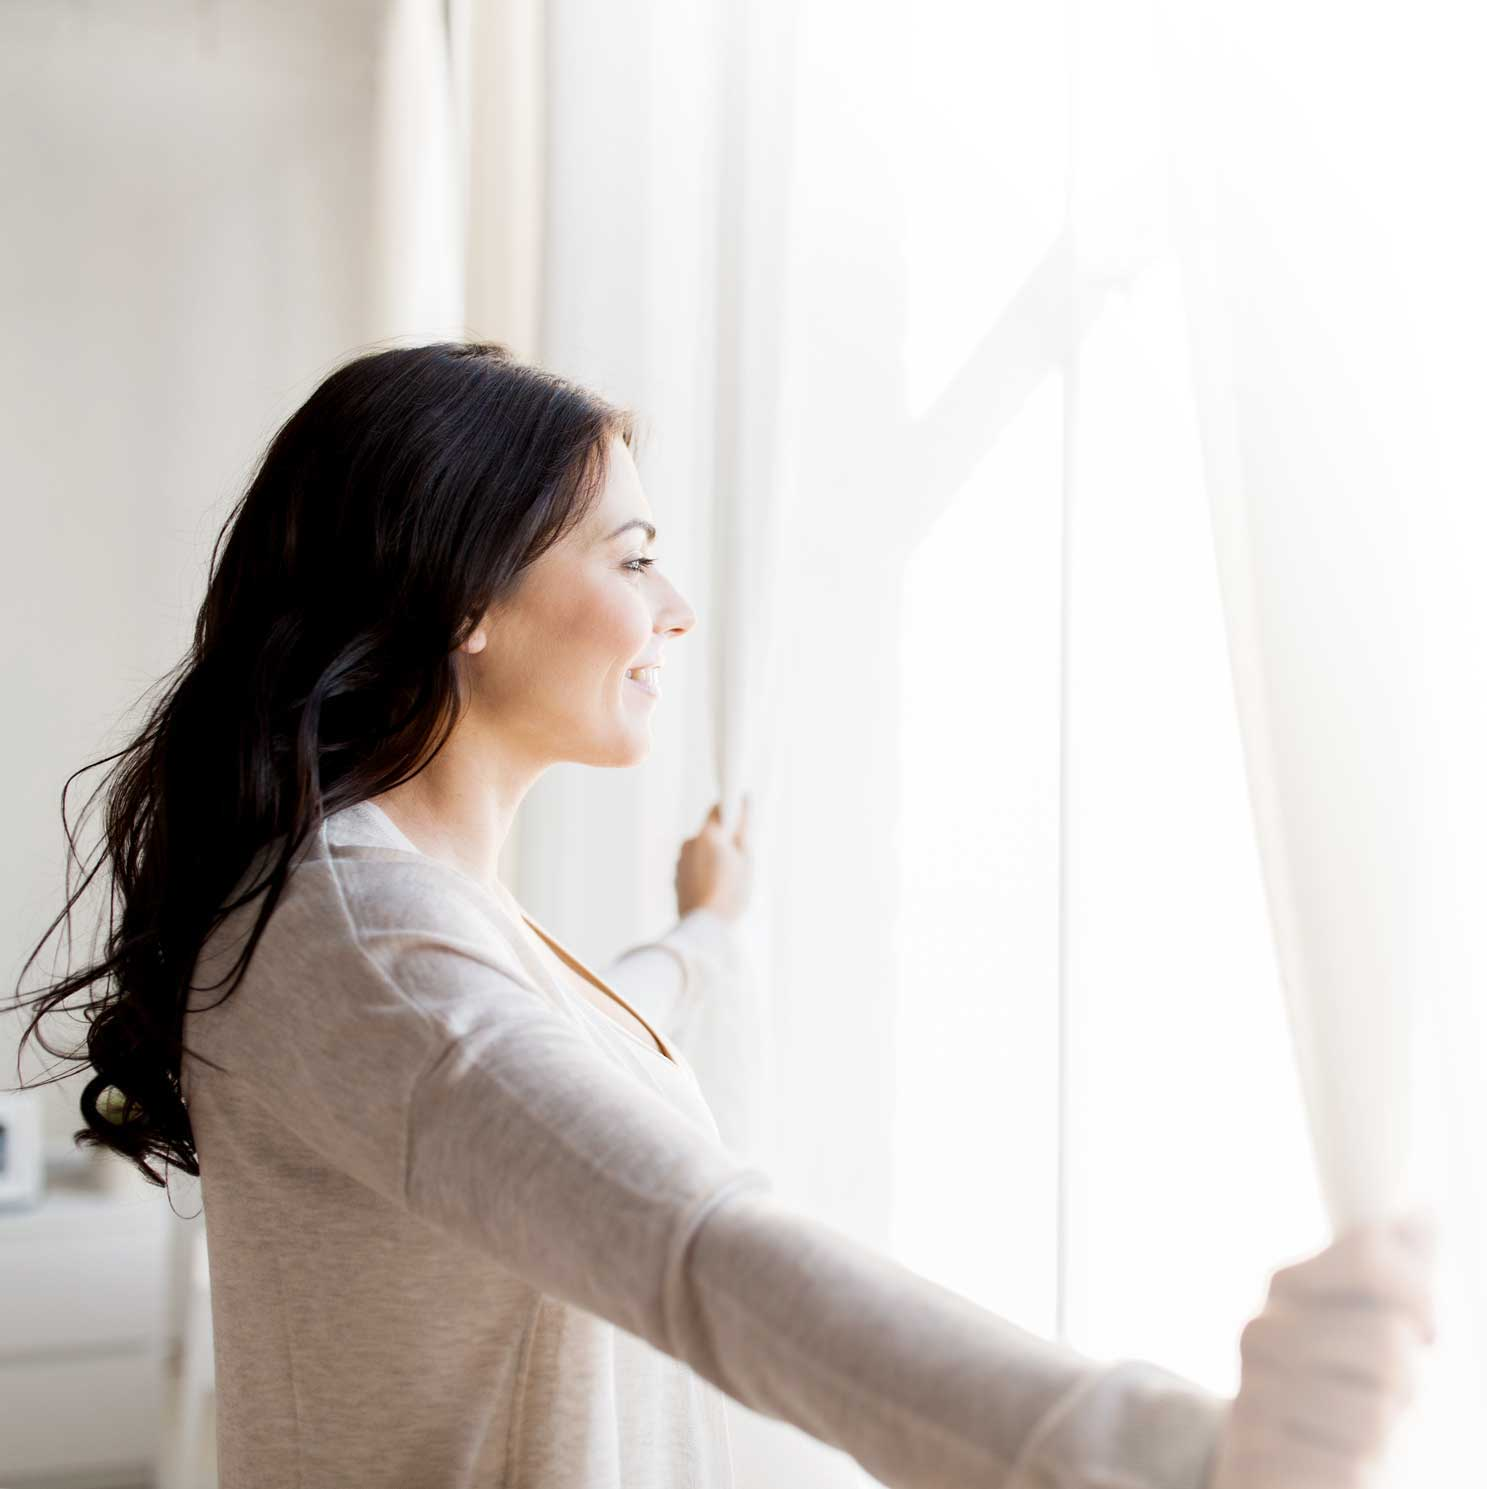 Woman with long hair looking out of her window with both hands holding the curtains.